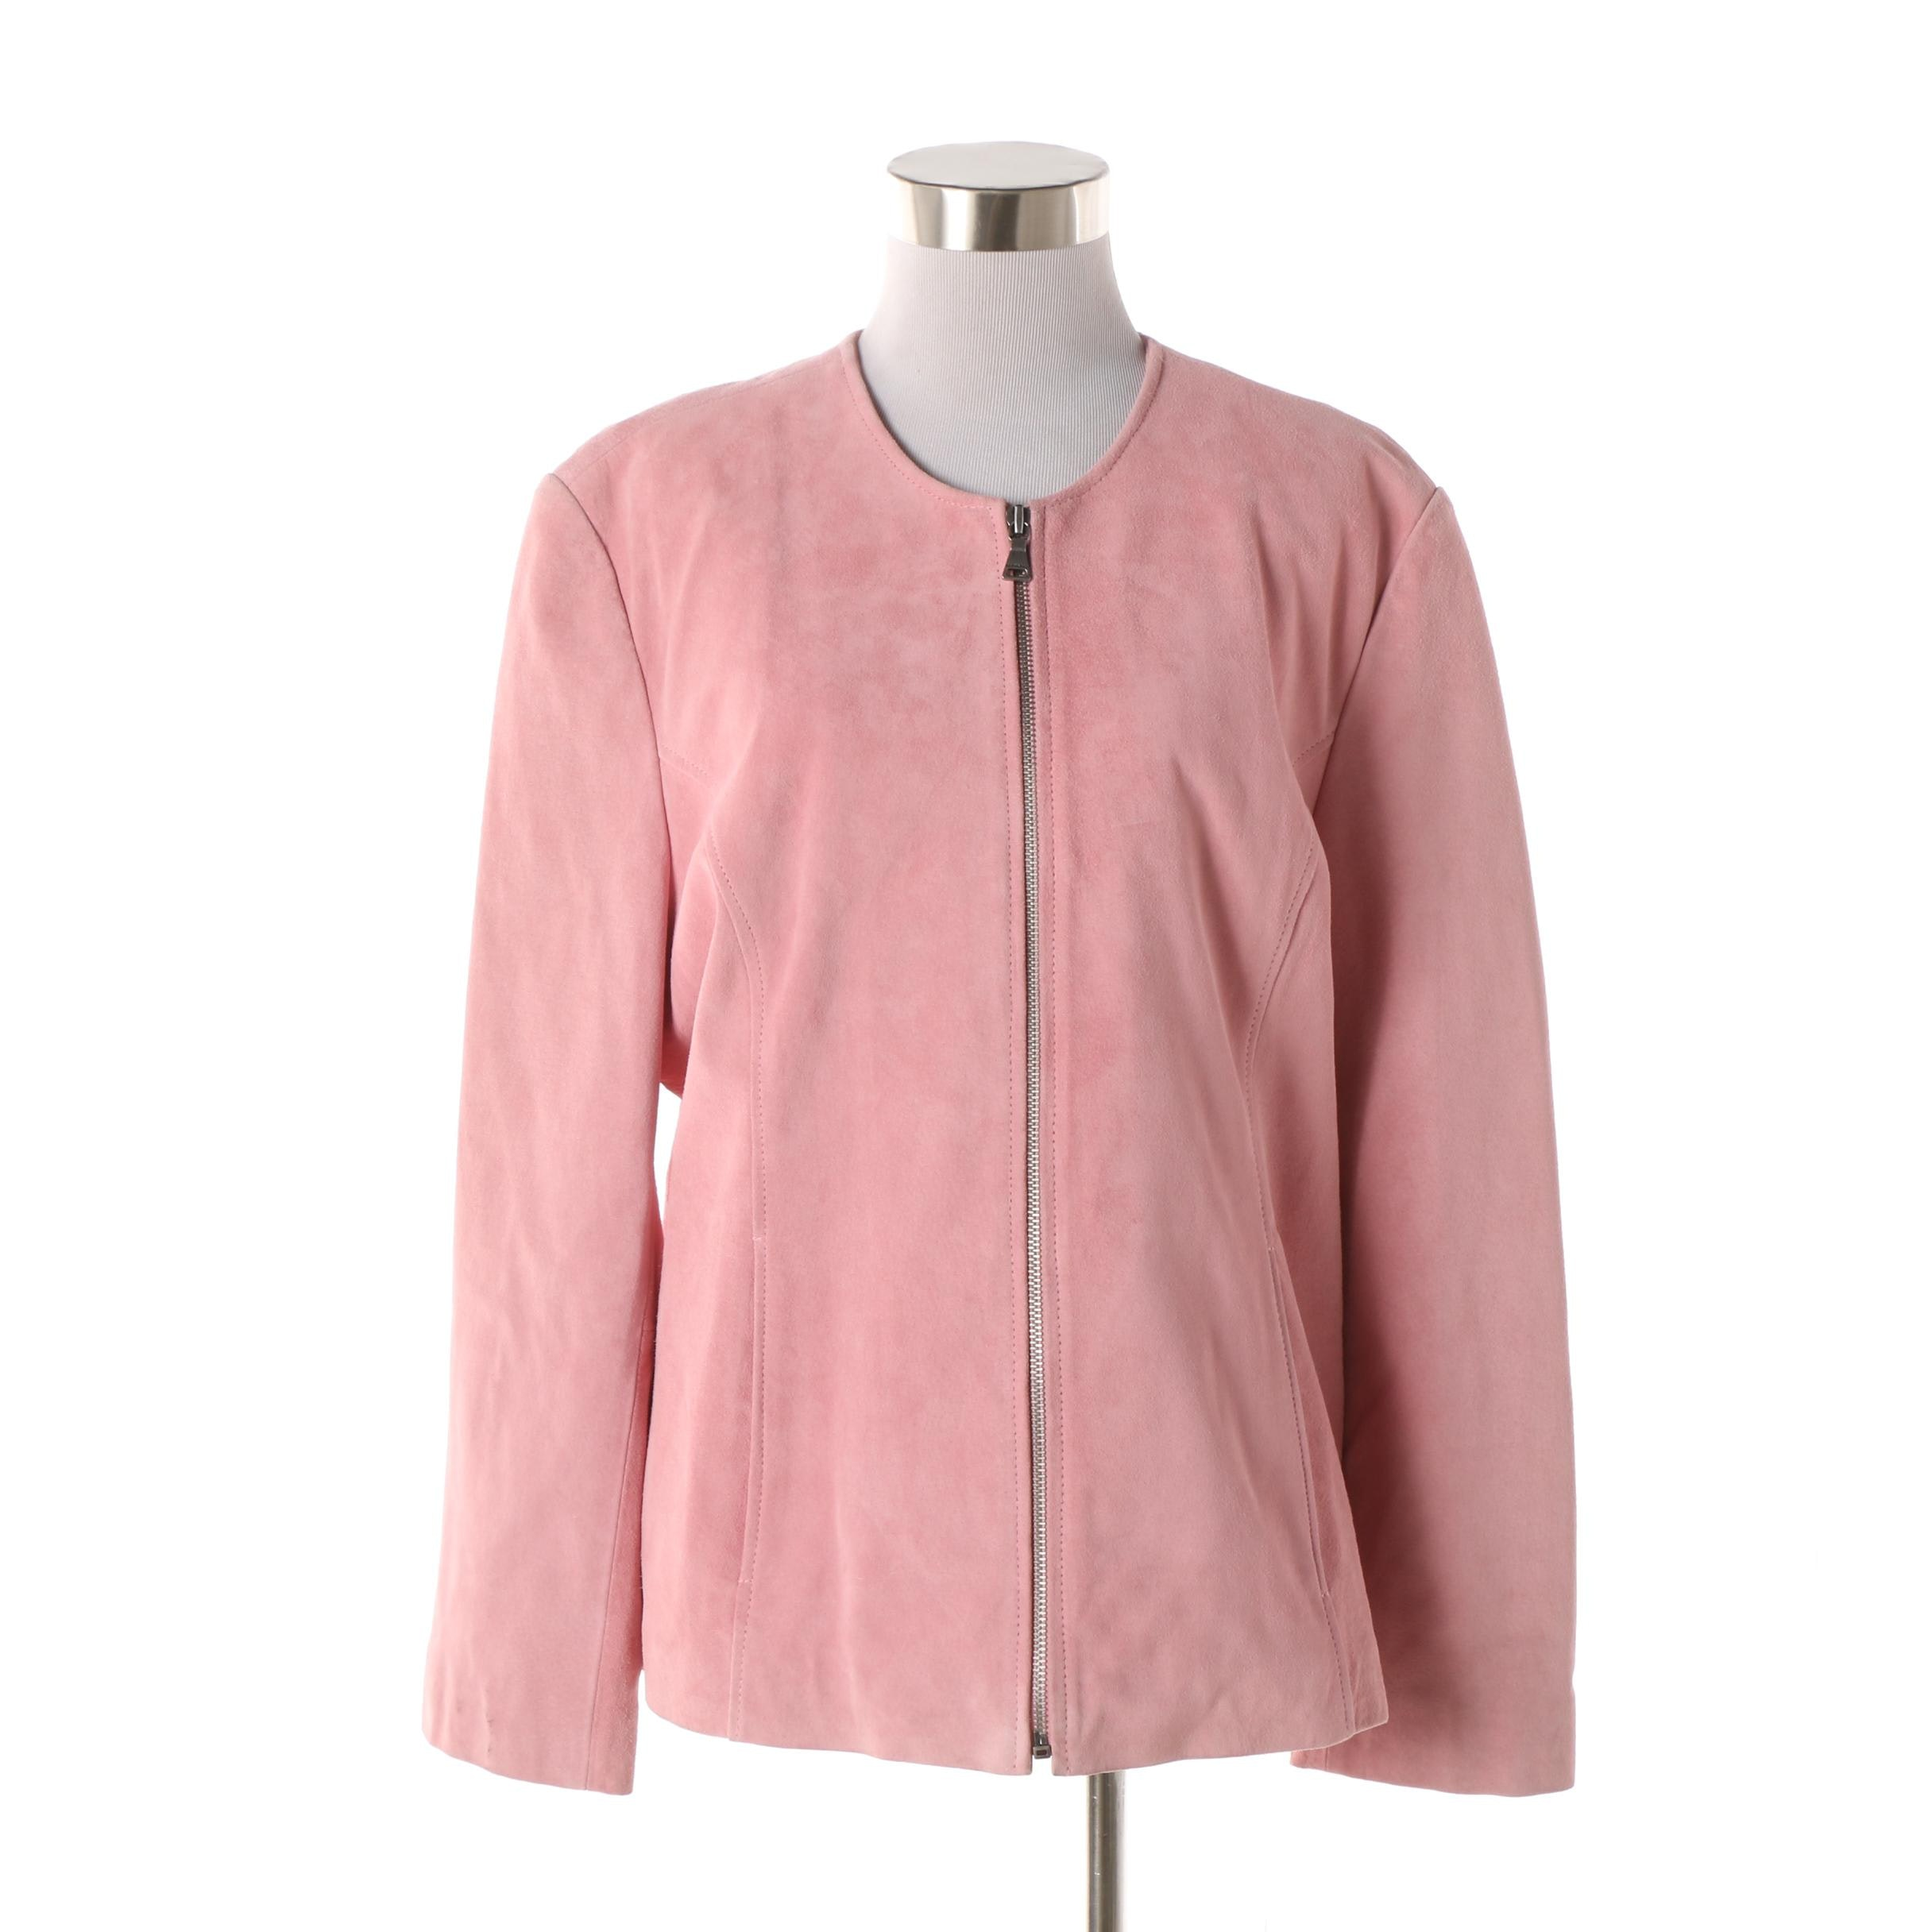 Women's Bernardo Pink Suede Collarless Jacket